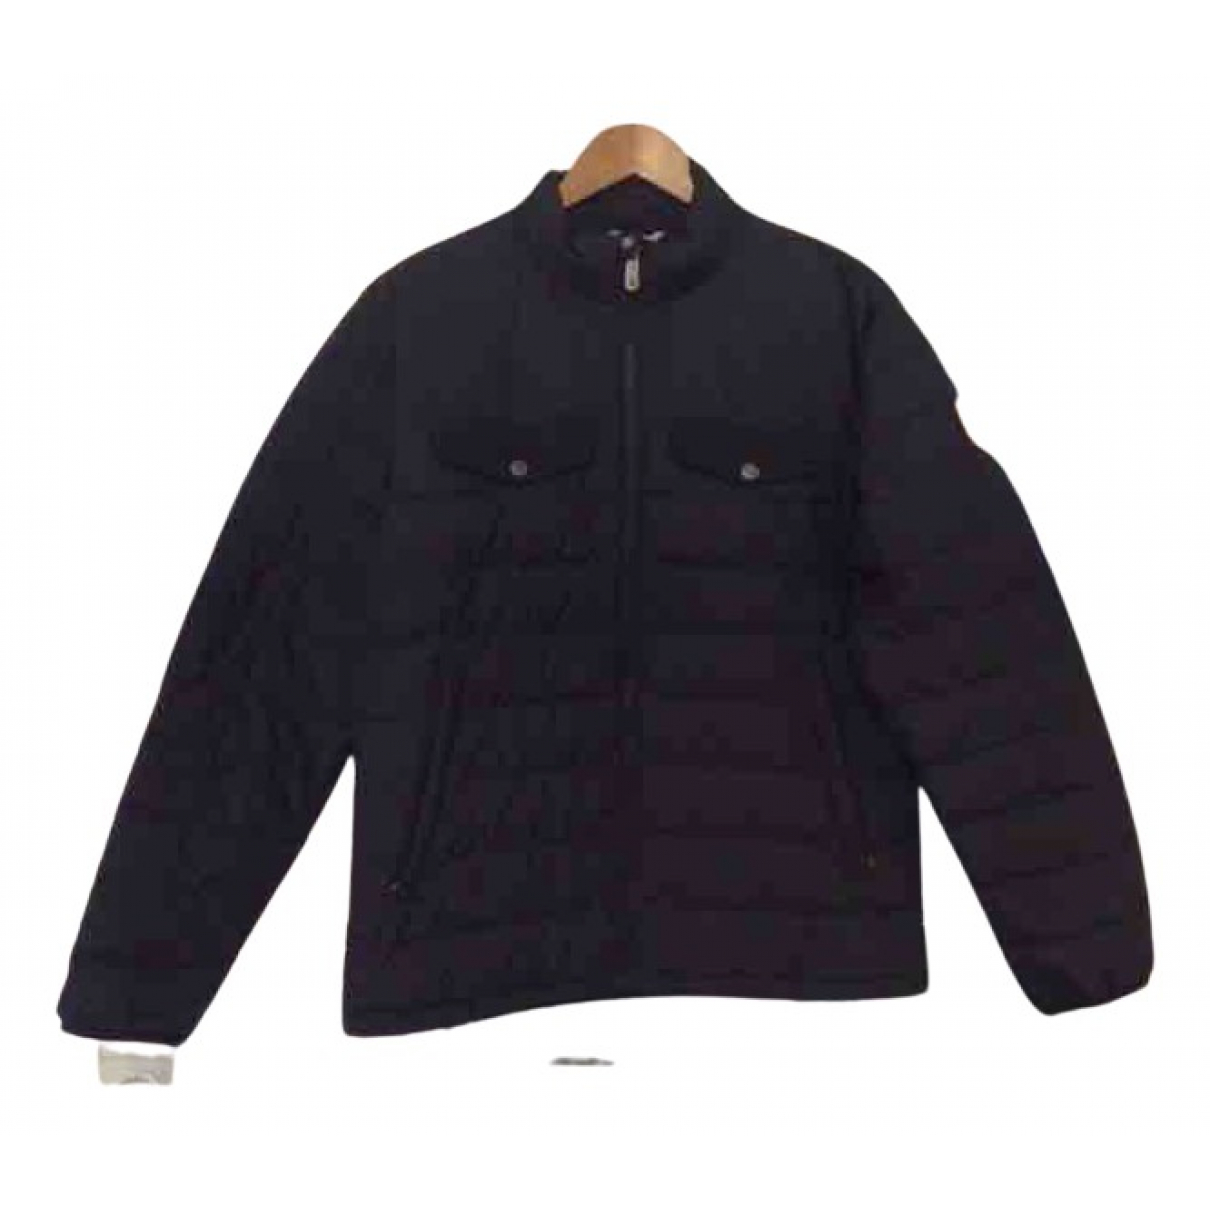 Fjallraeven \N Jacke in  Schwarz Synthetik